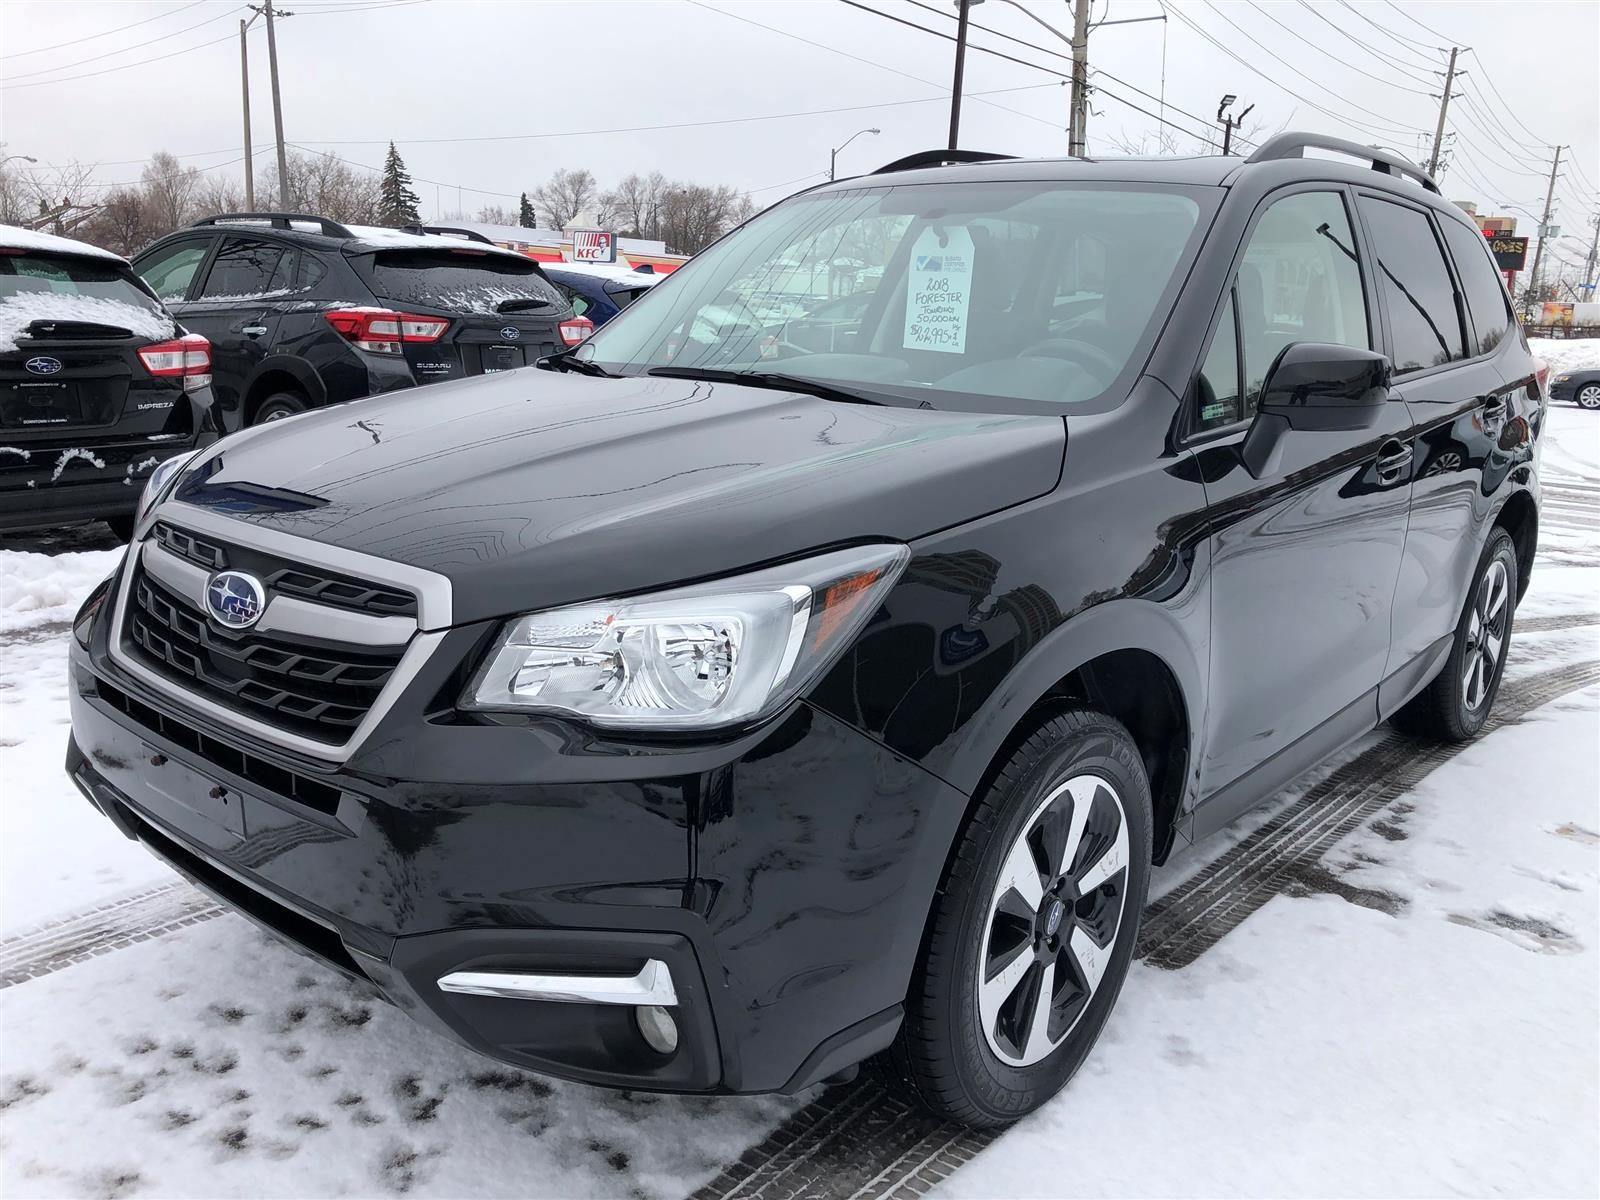 used 2018 Subaru Forester car, priced at $22,995